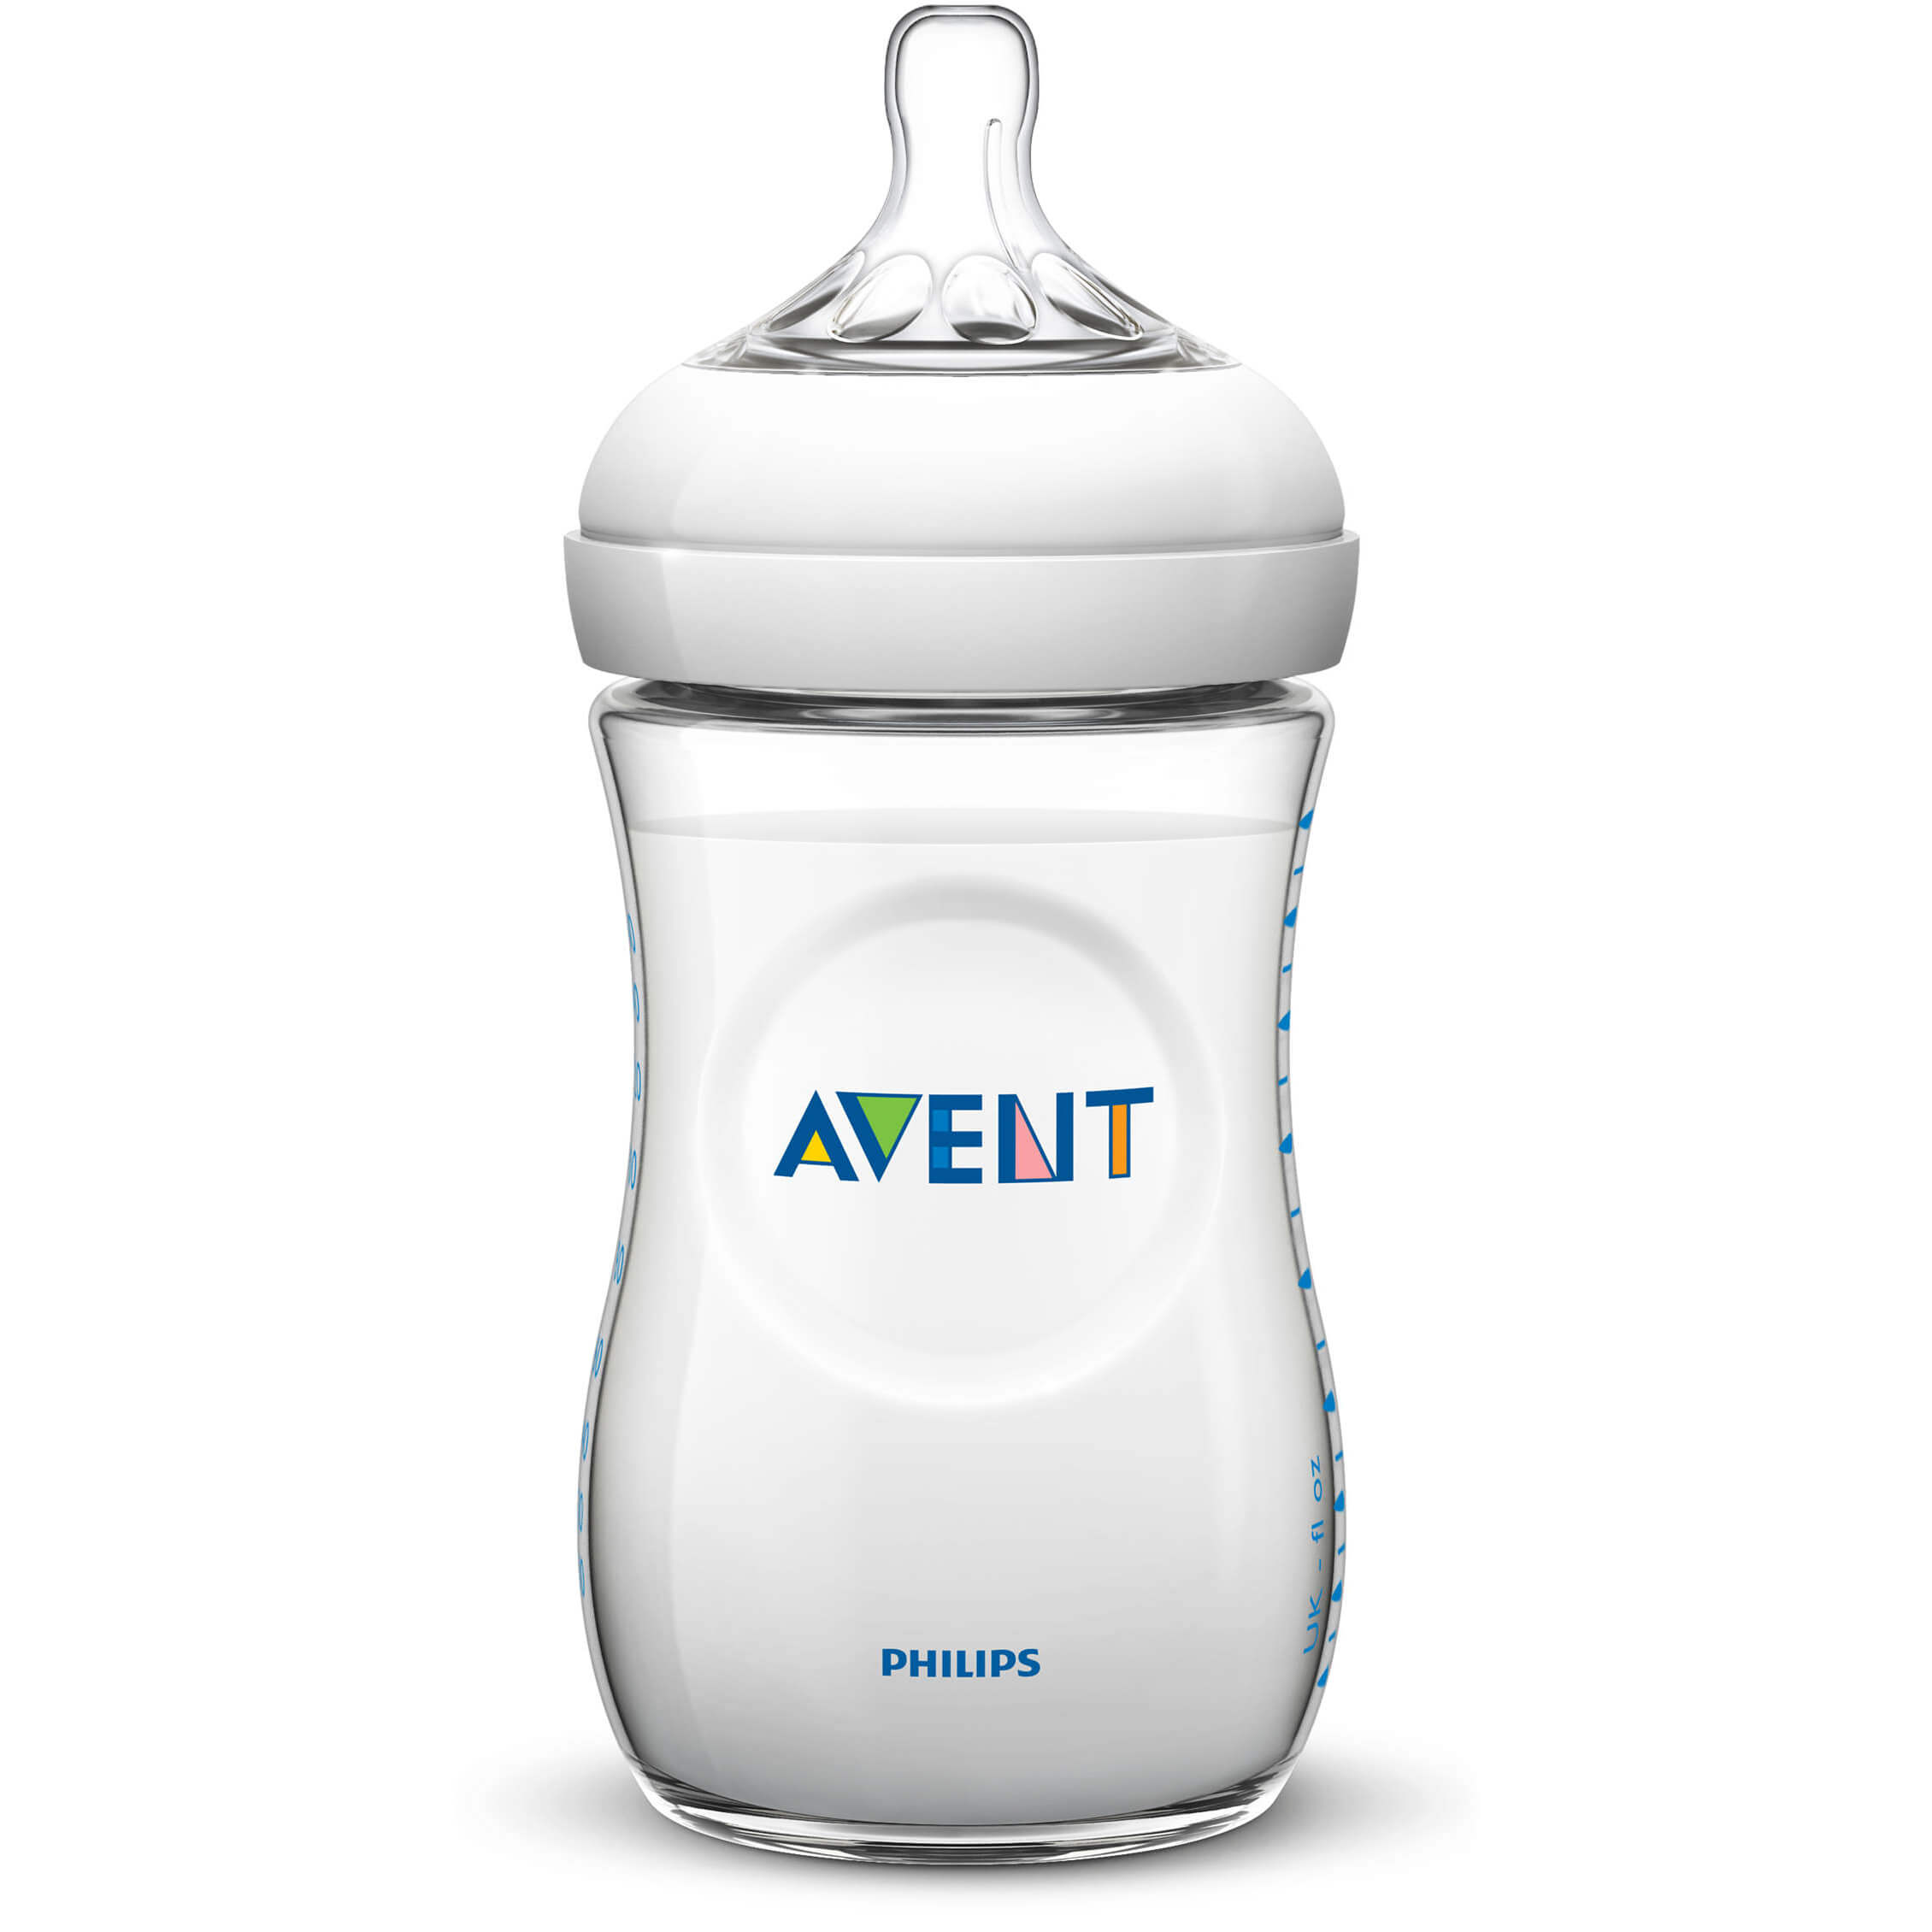 NEW Philips AVENT Classic 0 Mnths Feeding Bottle,Replacing Teat Bottle.